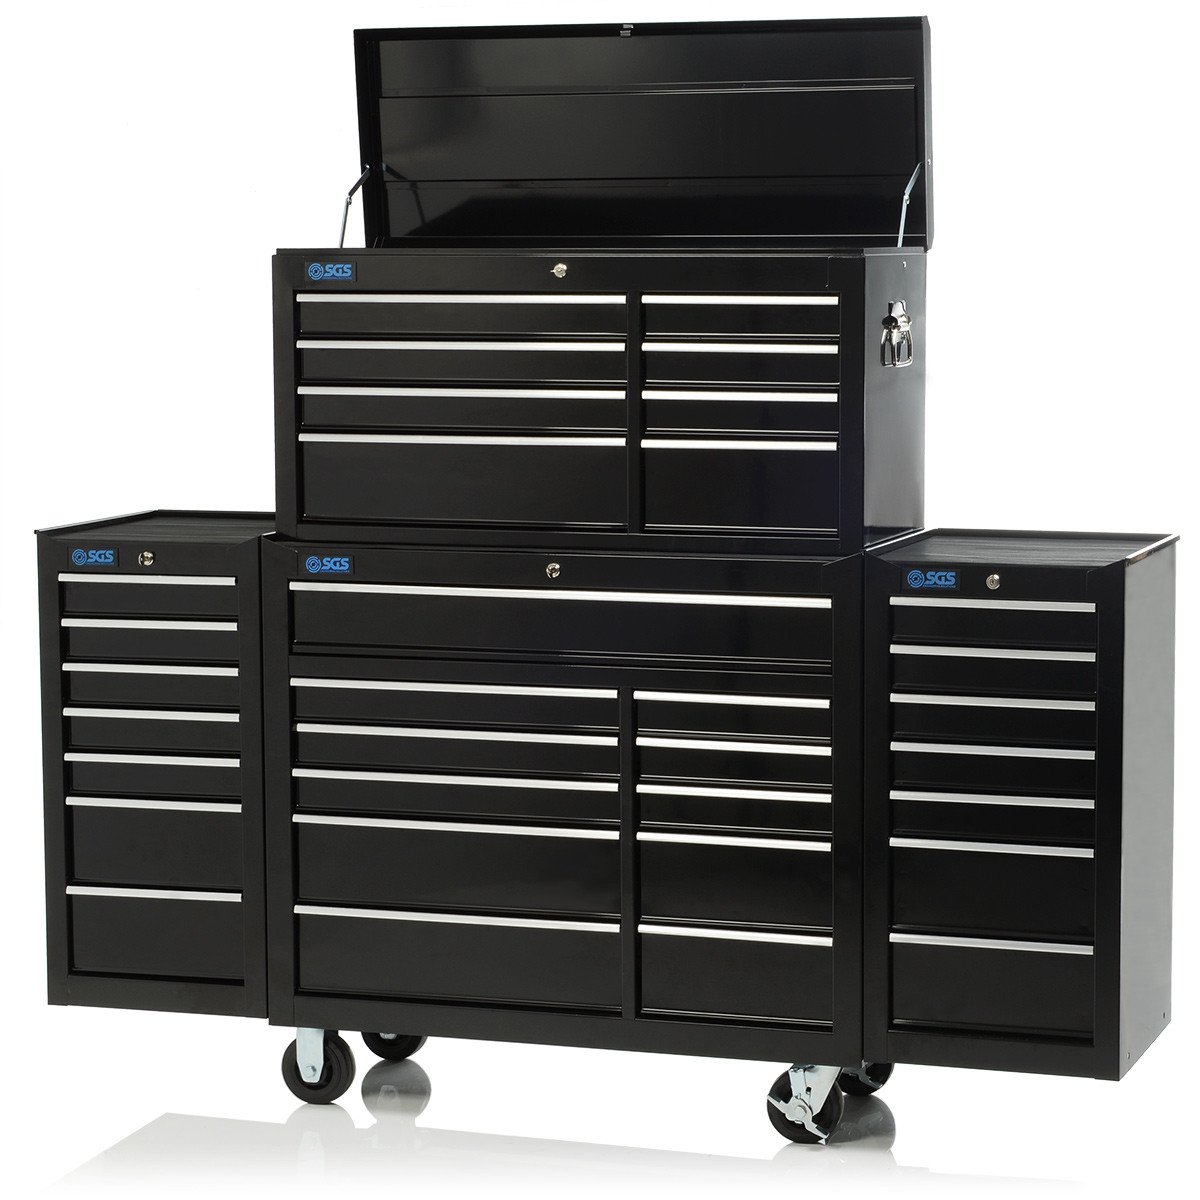 sharing tool cabinets renegade range side storage buttons product roll for drawer chests and cabinet box addthis industrial